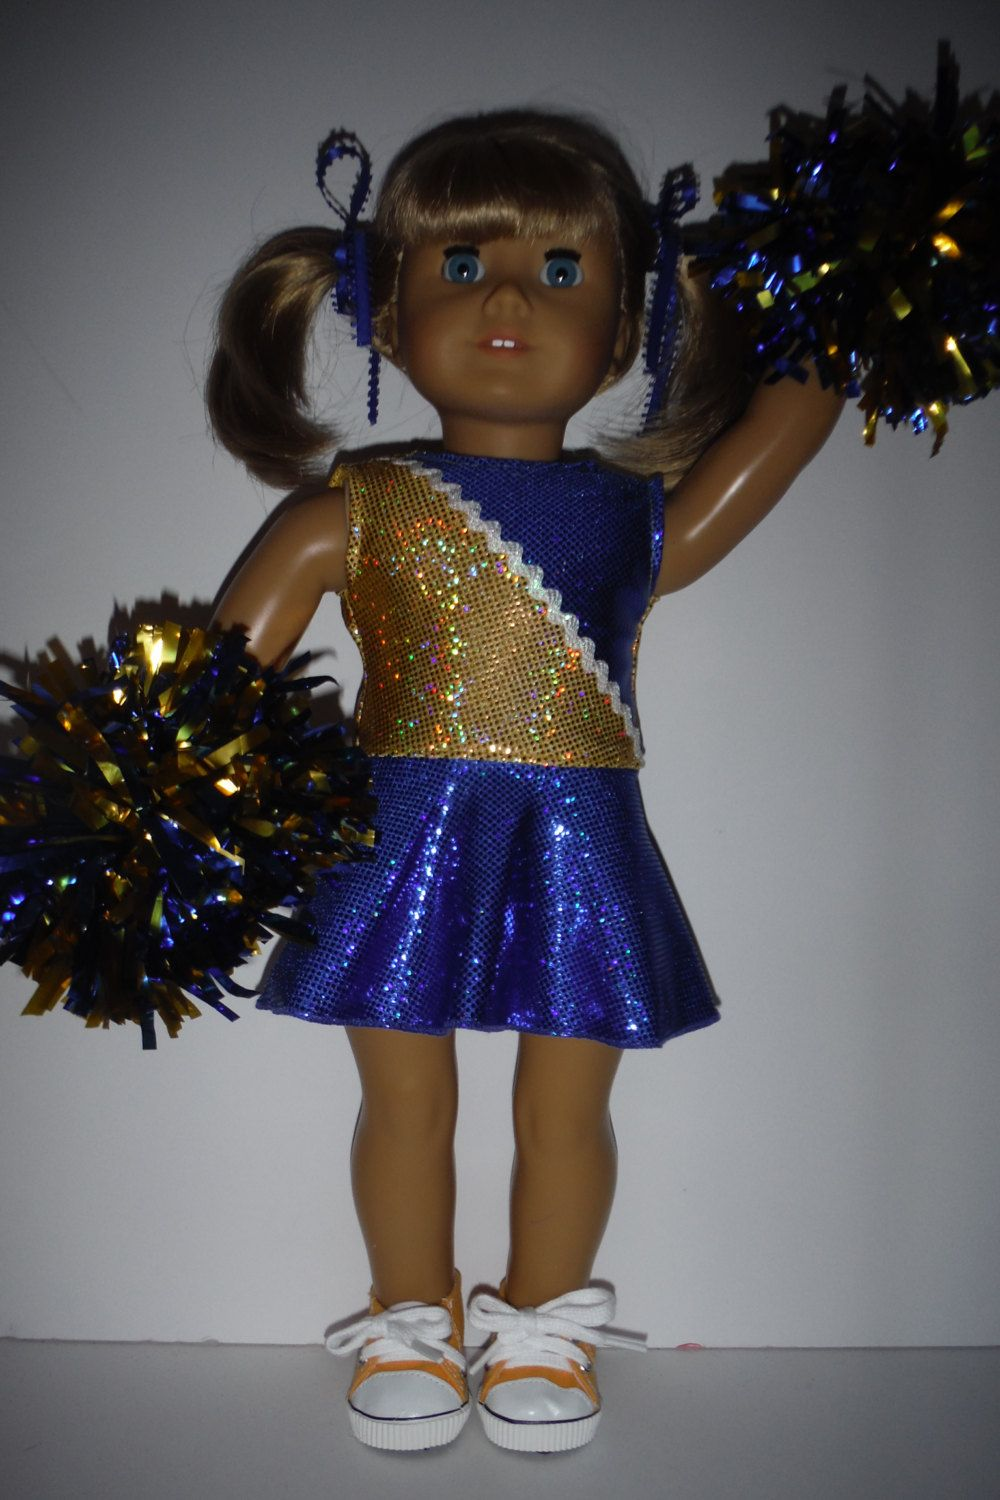 18 inch doll clothes - #403 Blue and Gold Cheerleader Handmade to fit the American girl doll #18inchcheerleaderclothes